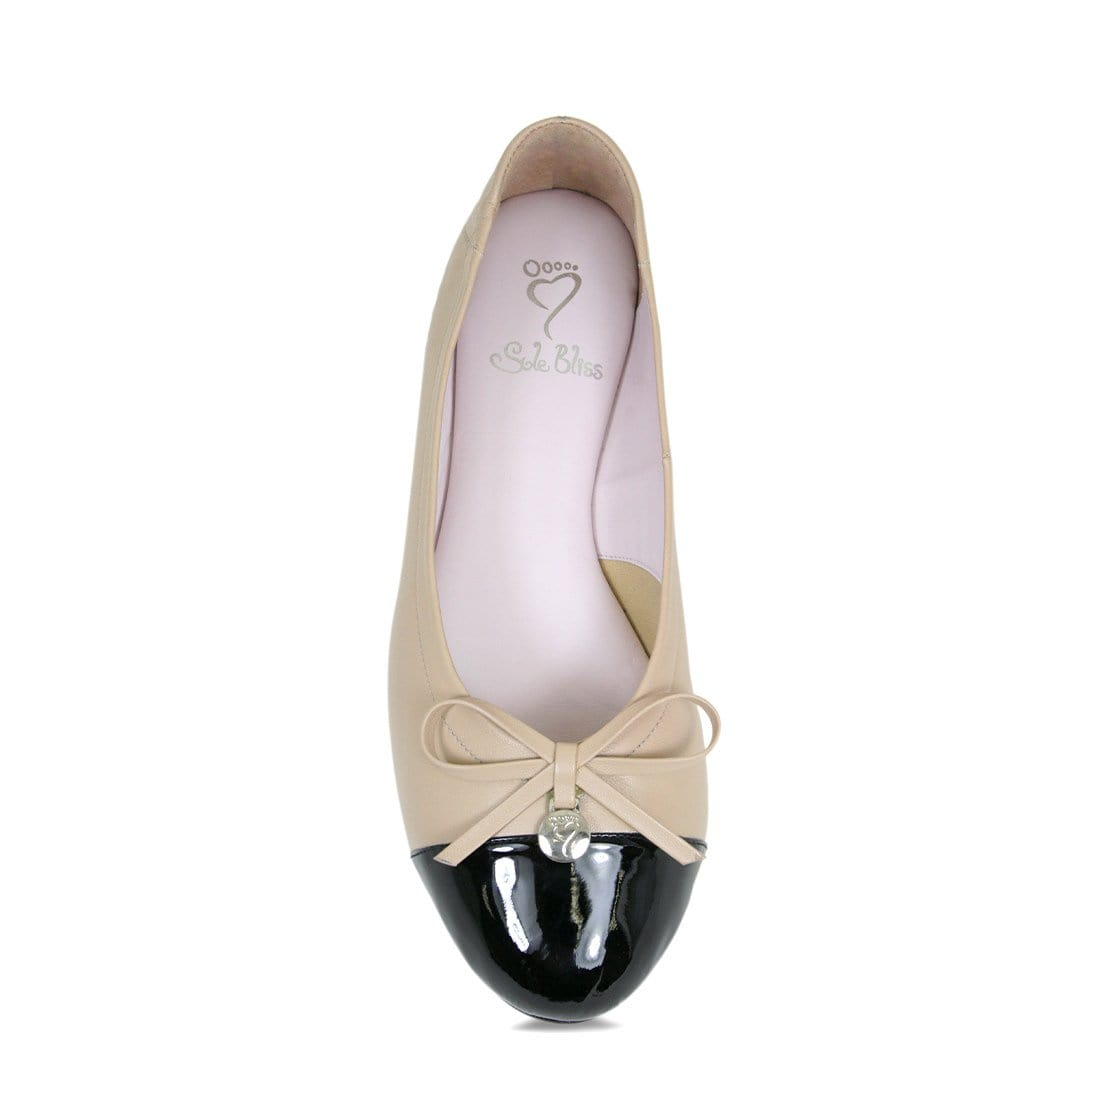 Nude & Black Leather Ballerina with Bow